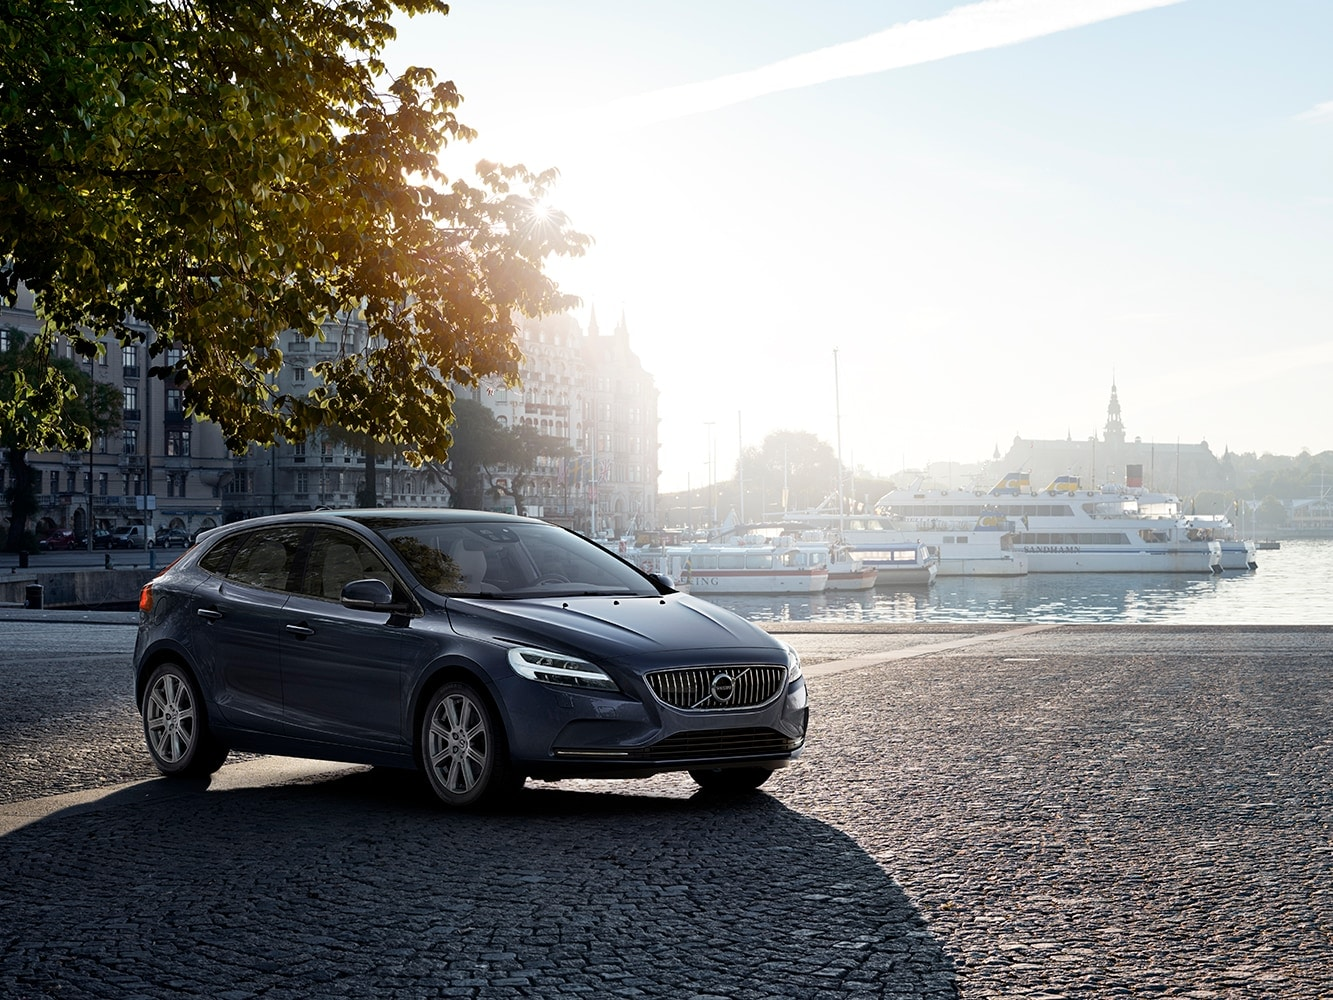 The Volvo V40 standing next to the ocean with the sunset in the backround